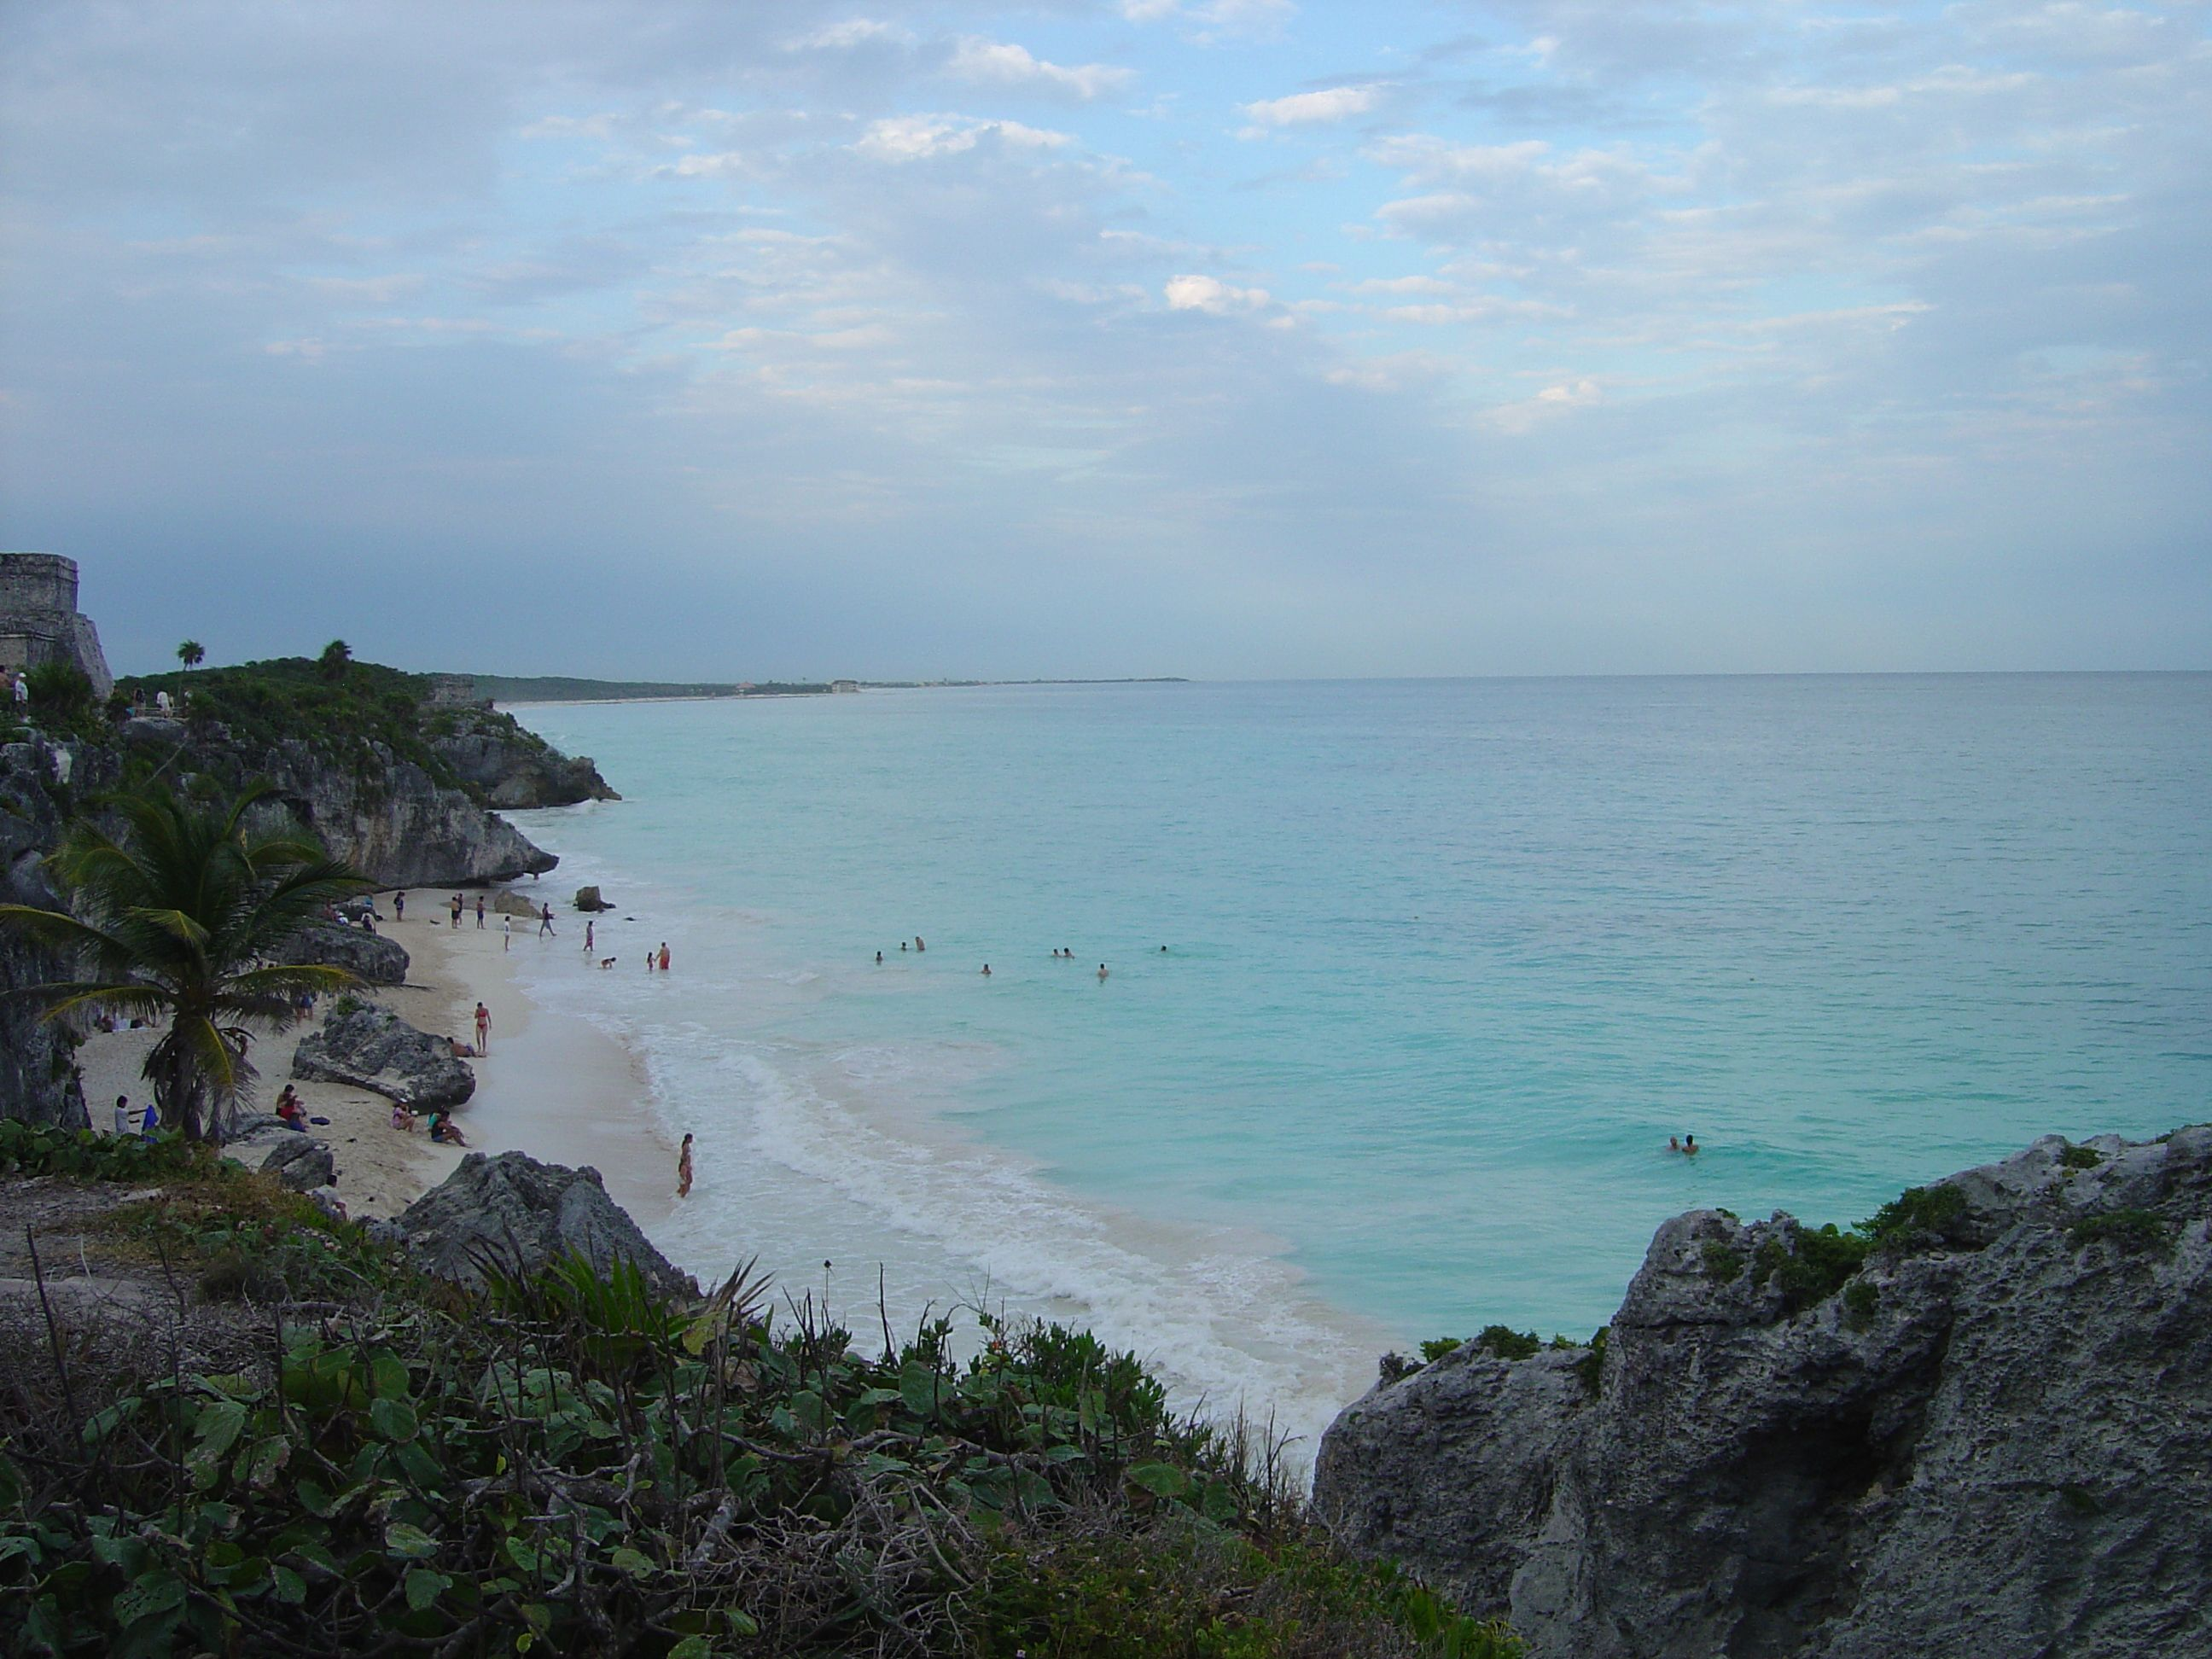 View of the Caribbean from the cliffs at the ruins of Tulum, just south of Cancun Mexico